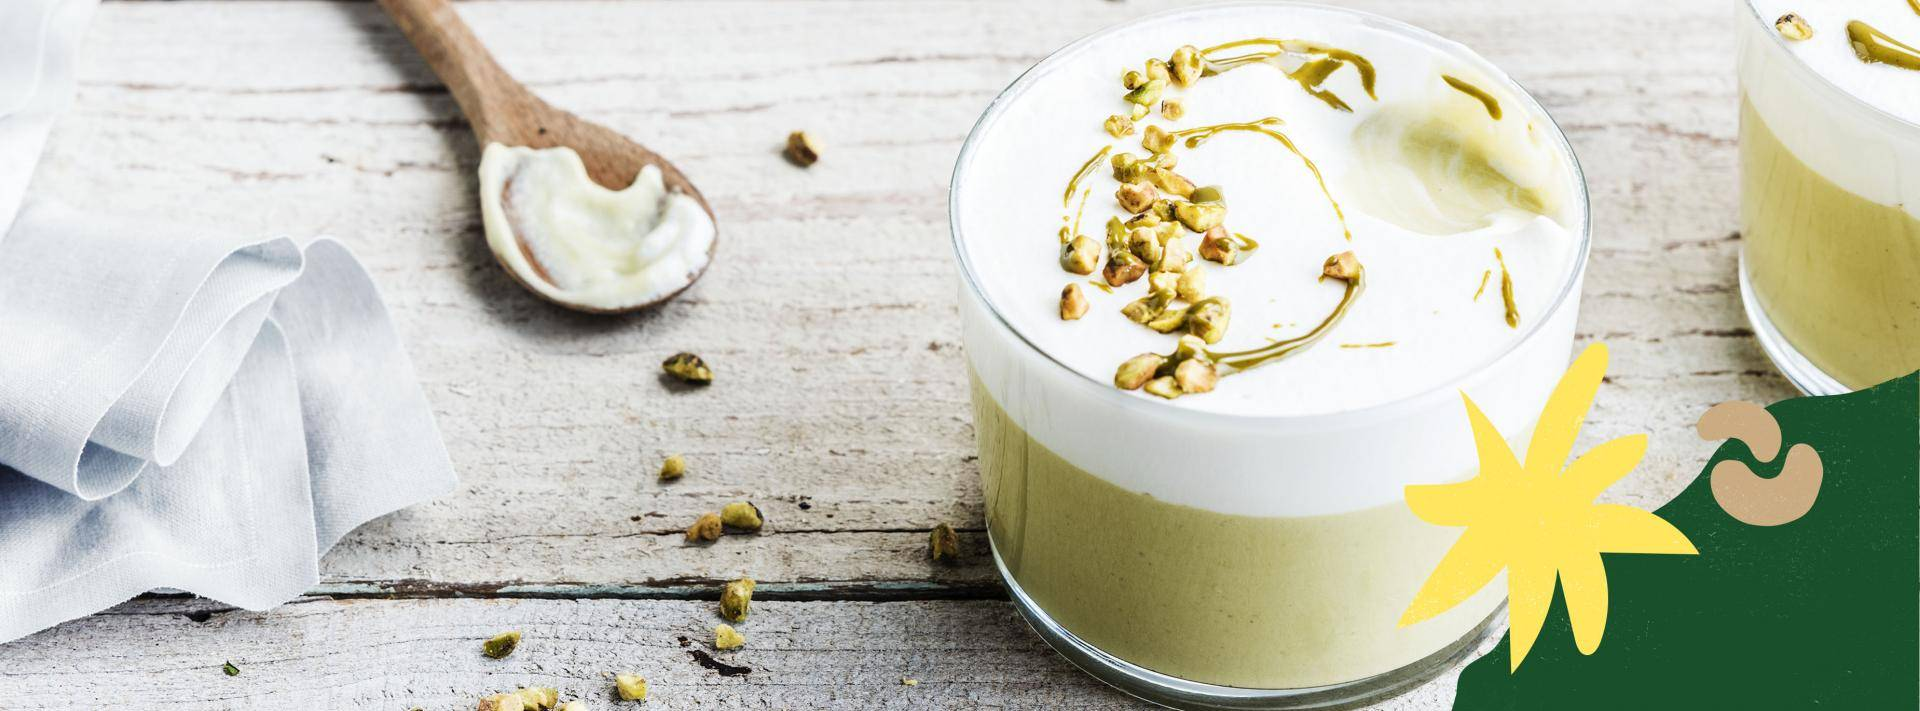 Plant-based dessert with vegan pistachio paste made by Martin Diez